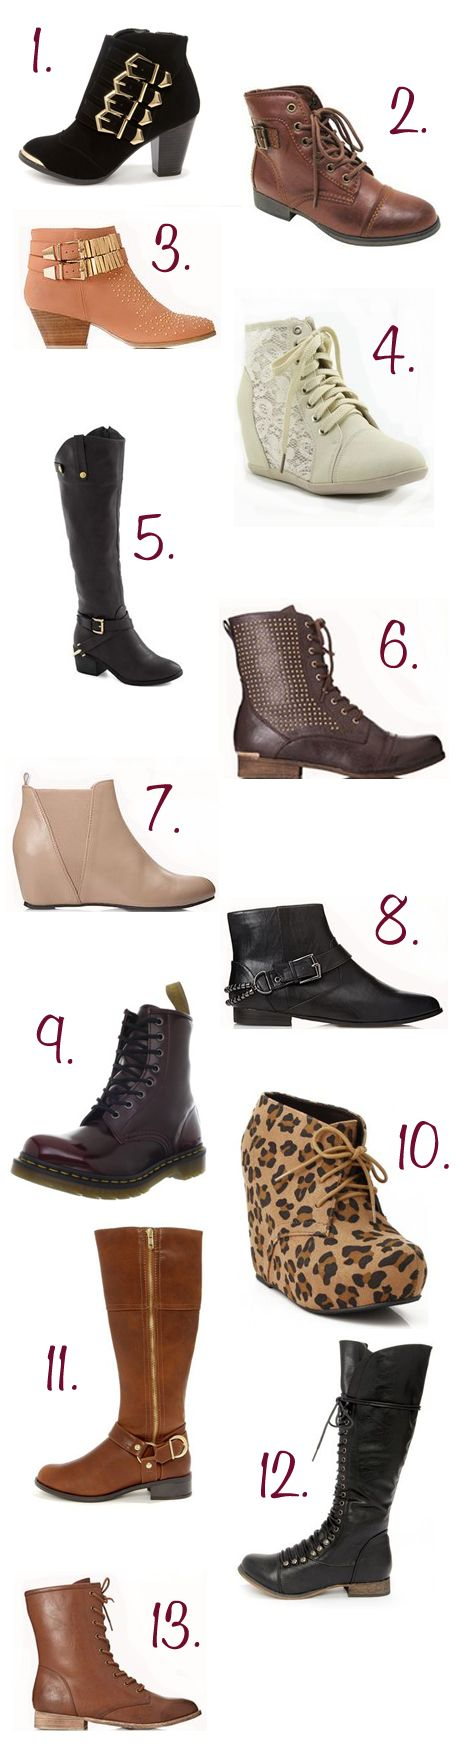 Vegan Fashion | Boots for Fall, All the right trends!  Also vegan inspired, www.facebook.com/carbology tuck in.